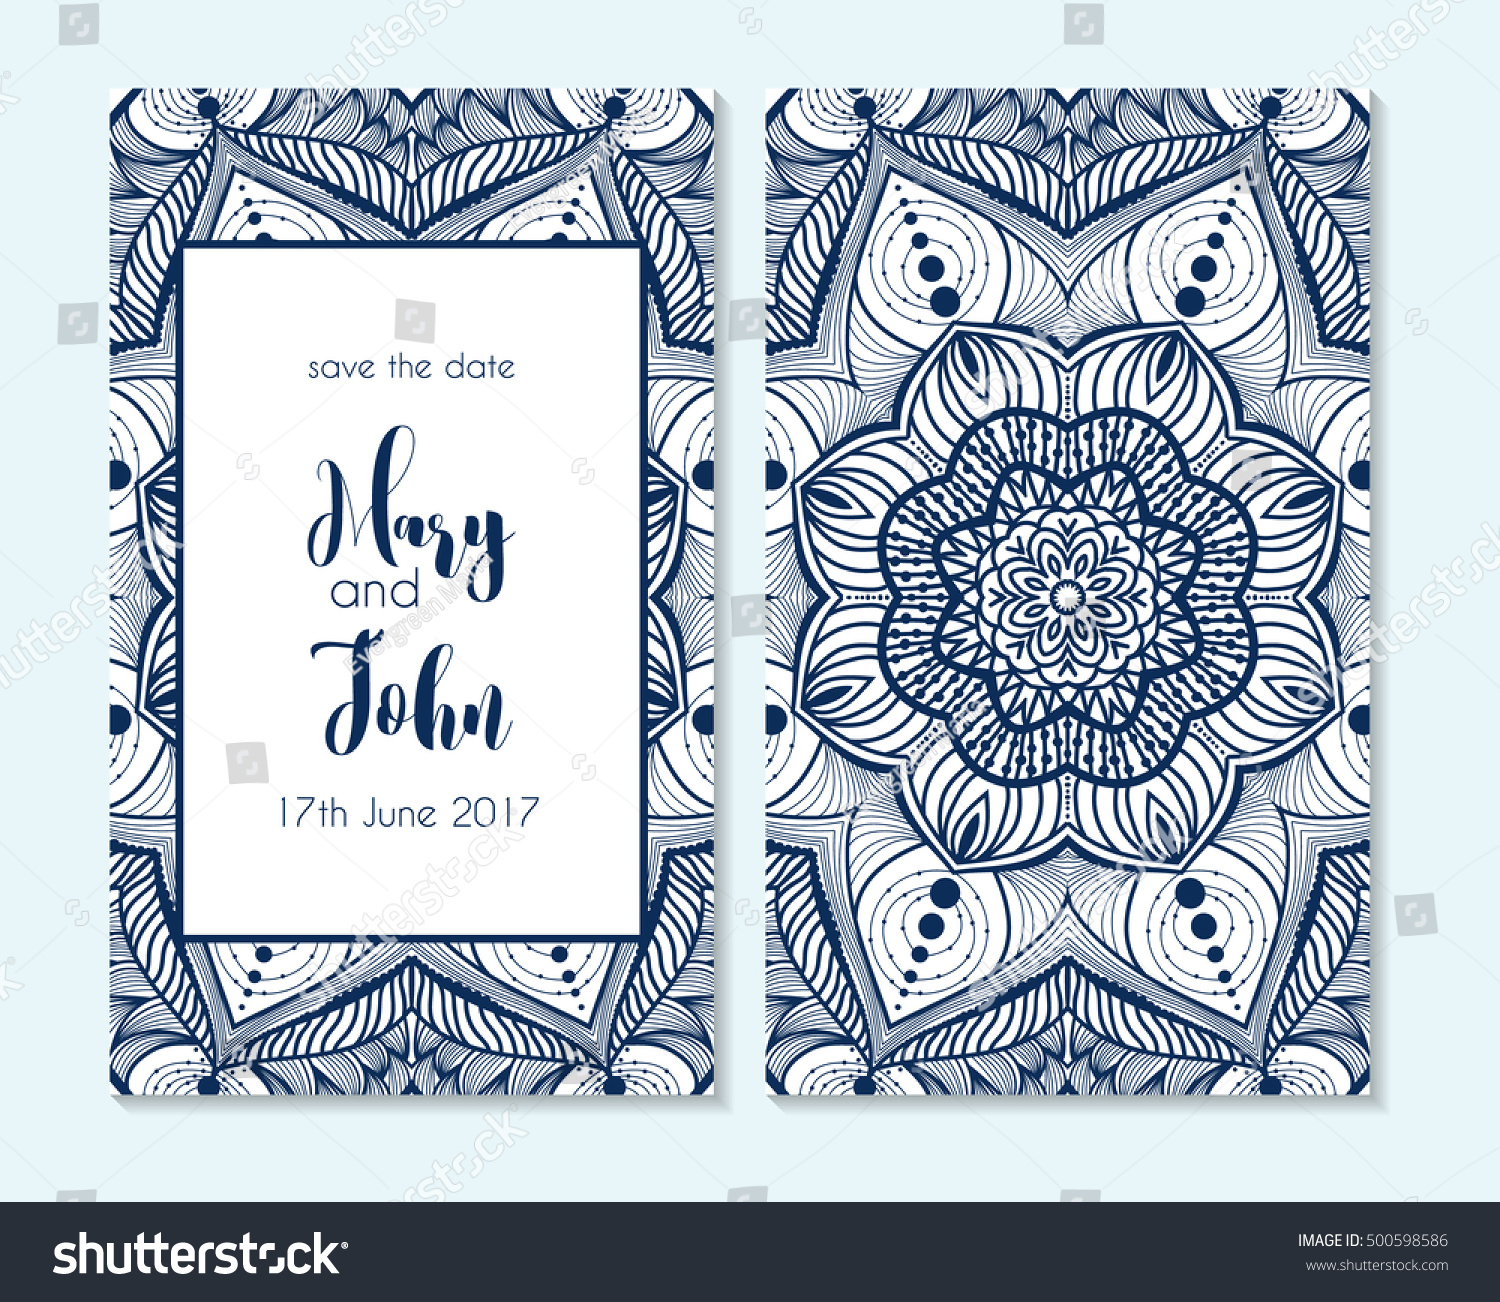 Rustic vintage pastel template design layout stock vector 500598586 rustic vintage pastel template design layout for wedding invitation thank you card save the stopboris Choice Image